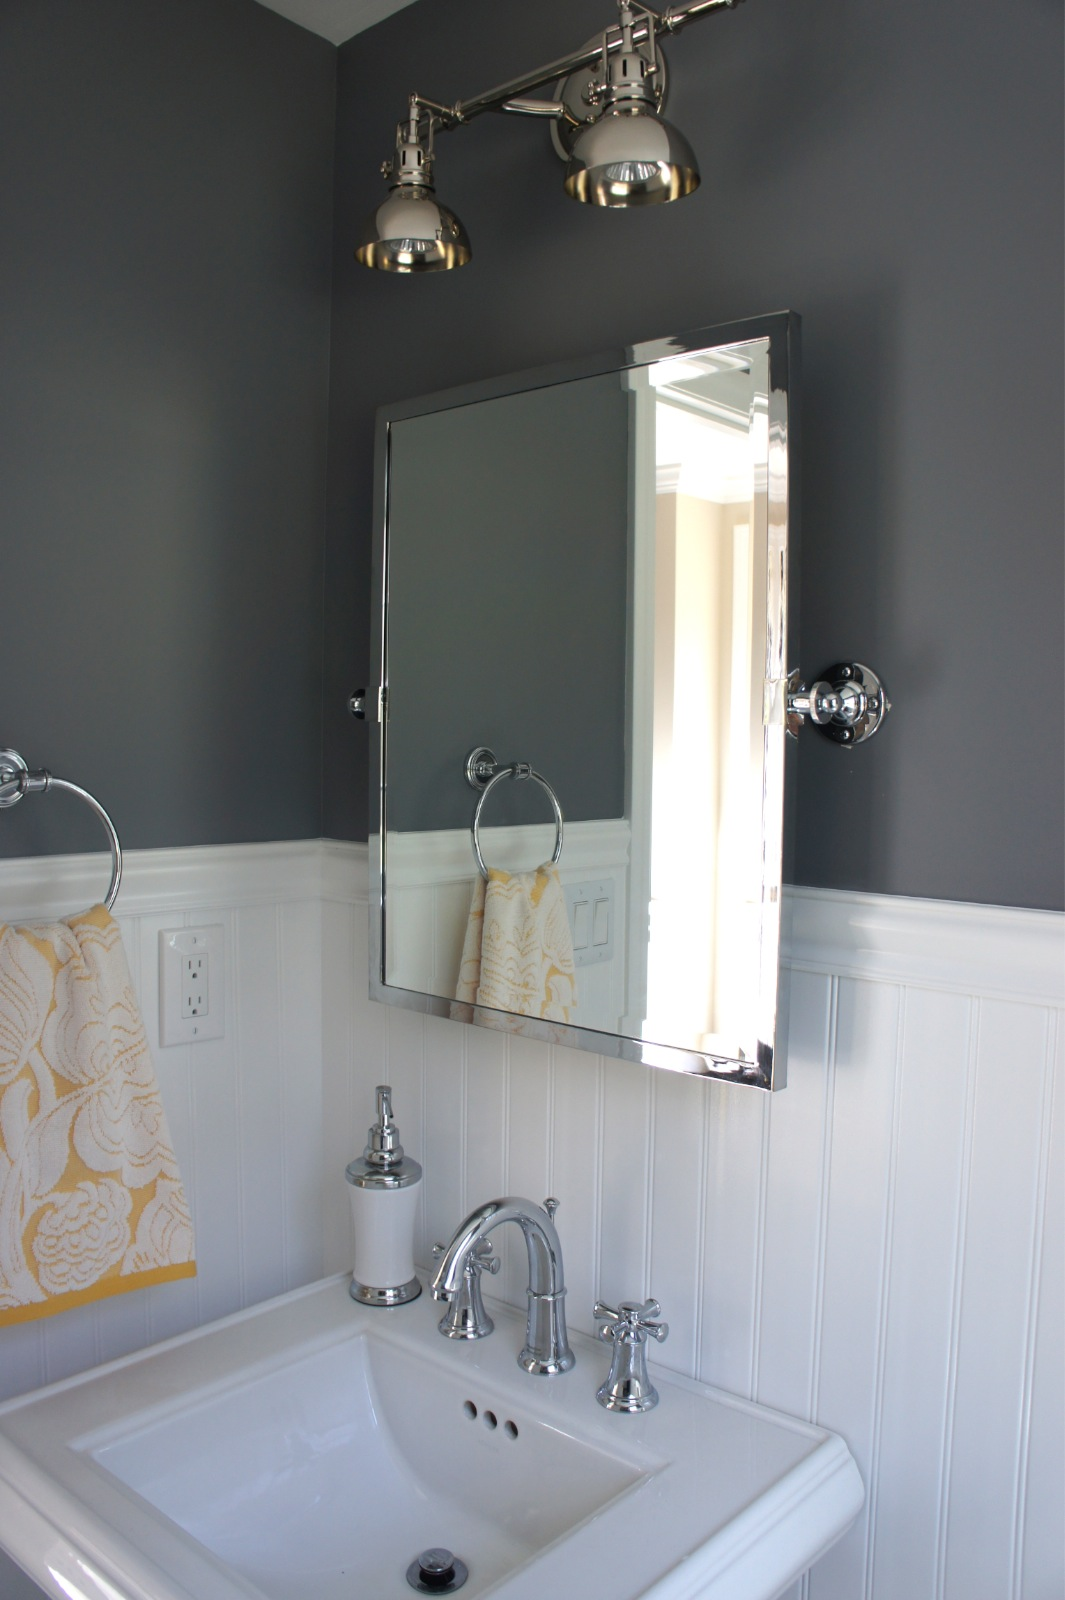 Home with baxter bathroom art and other updates for Bathroom lights above mirror